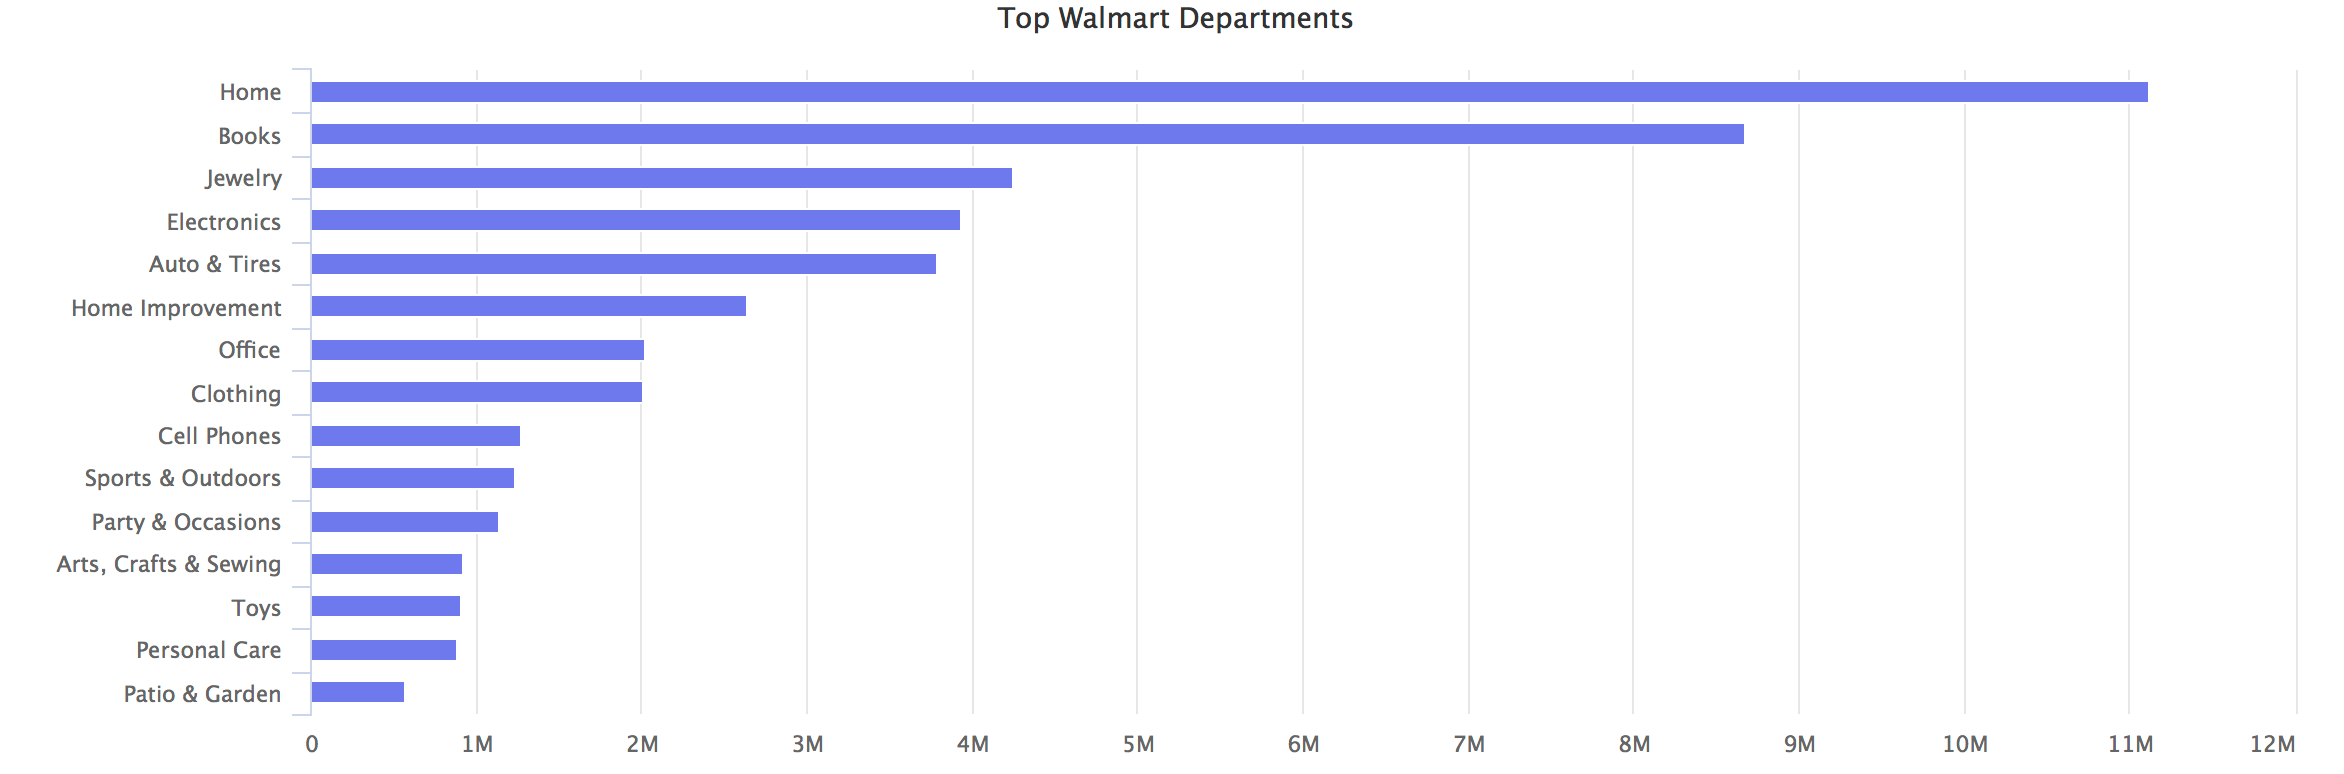 Walmart Top Departments